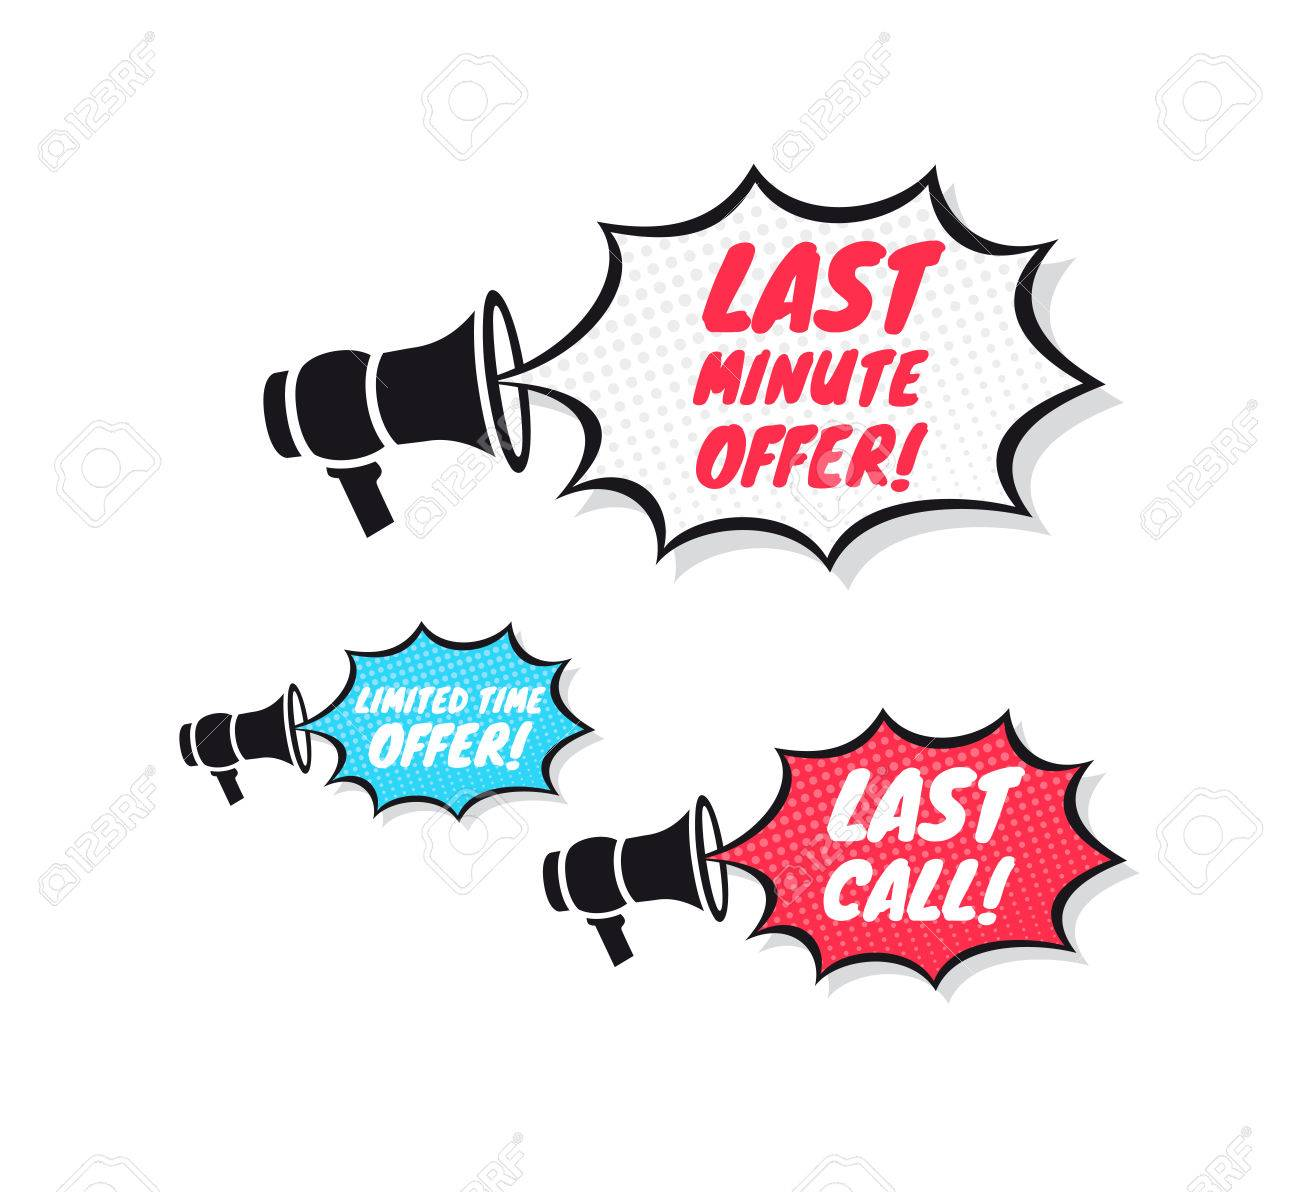 1300x1192 Last Minute Offer, Limited Time Offer Amp Last Call Megaphone Icons